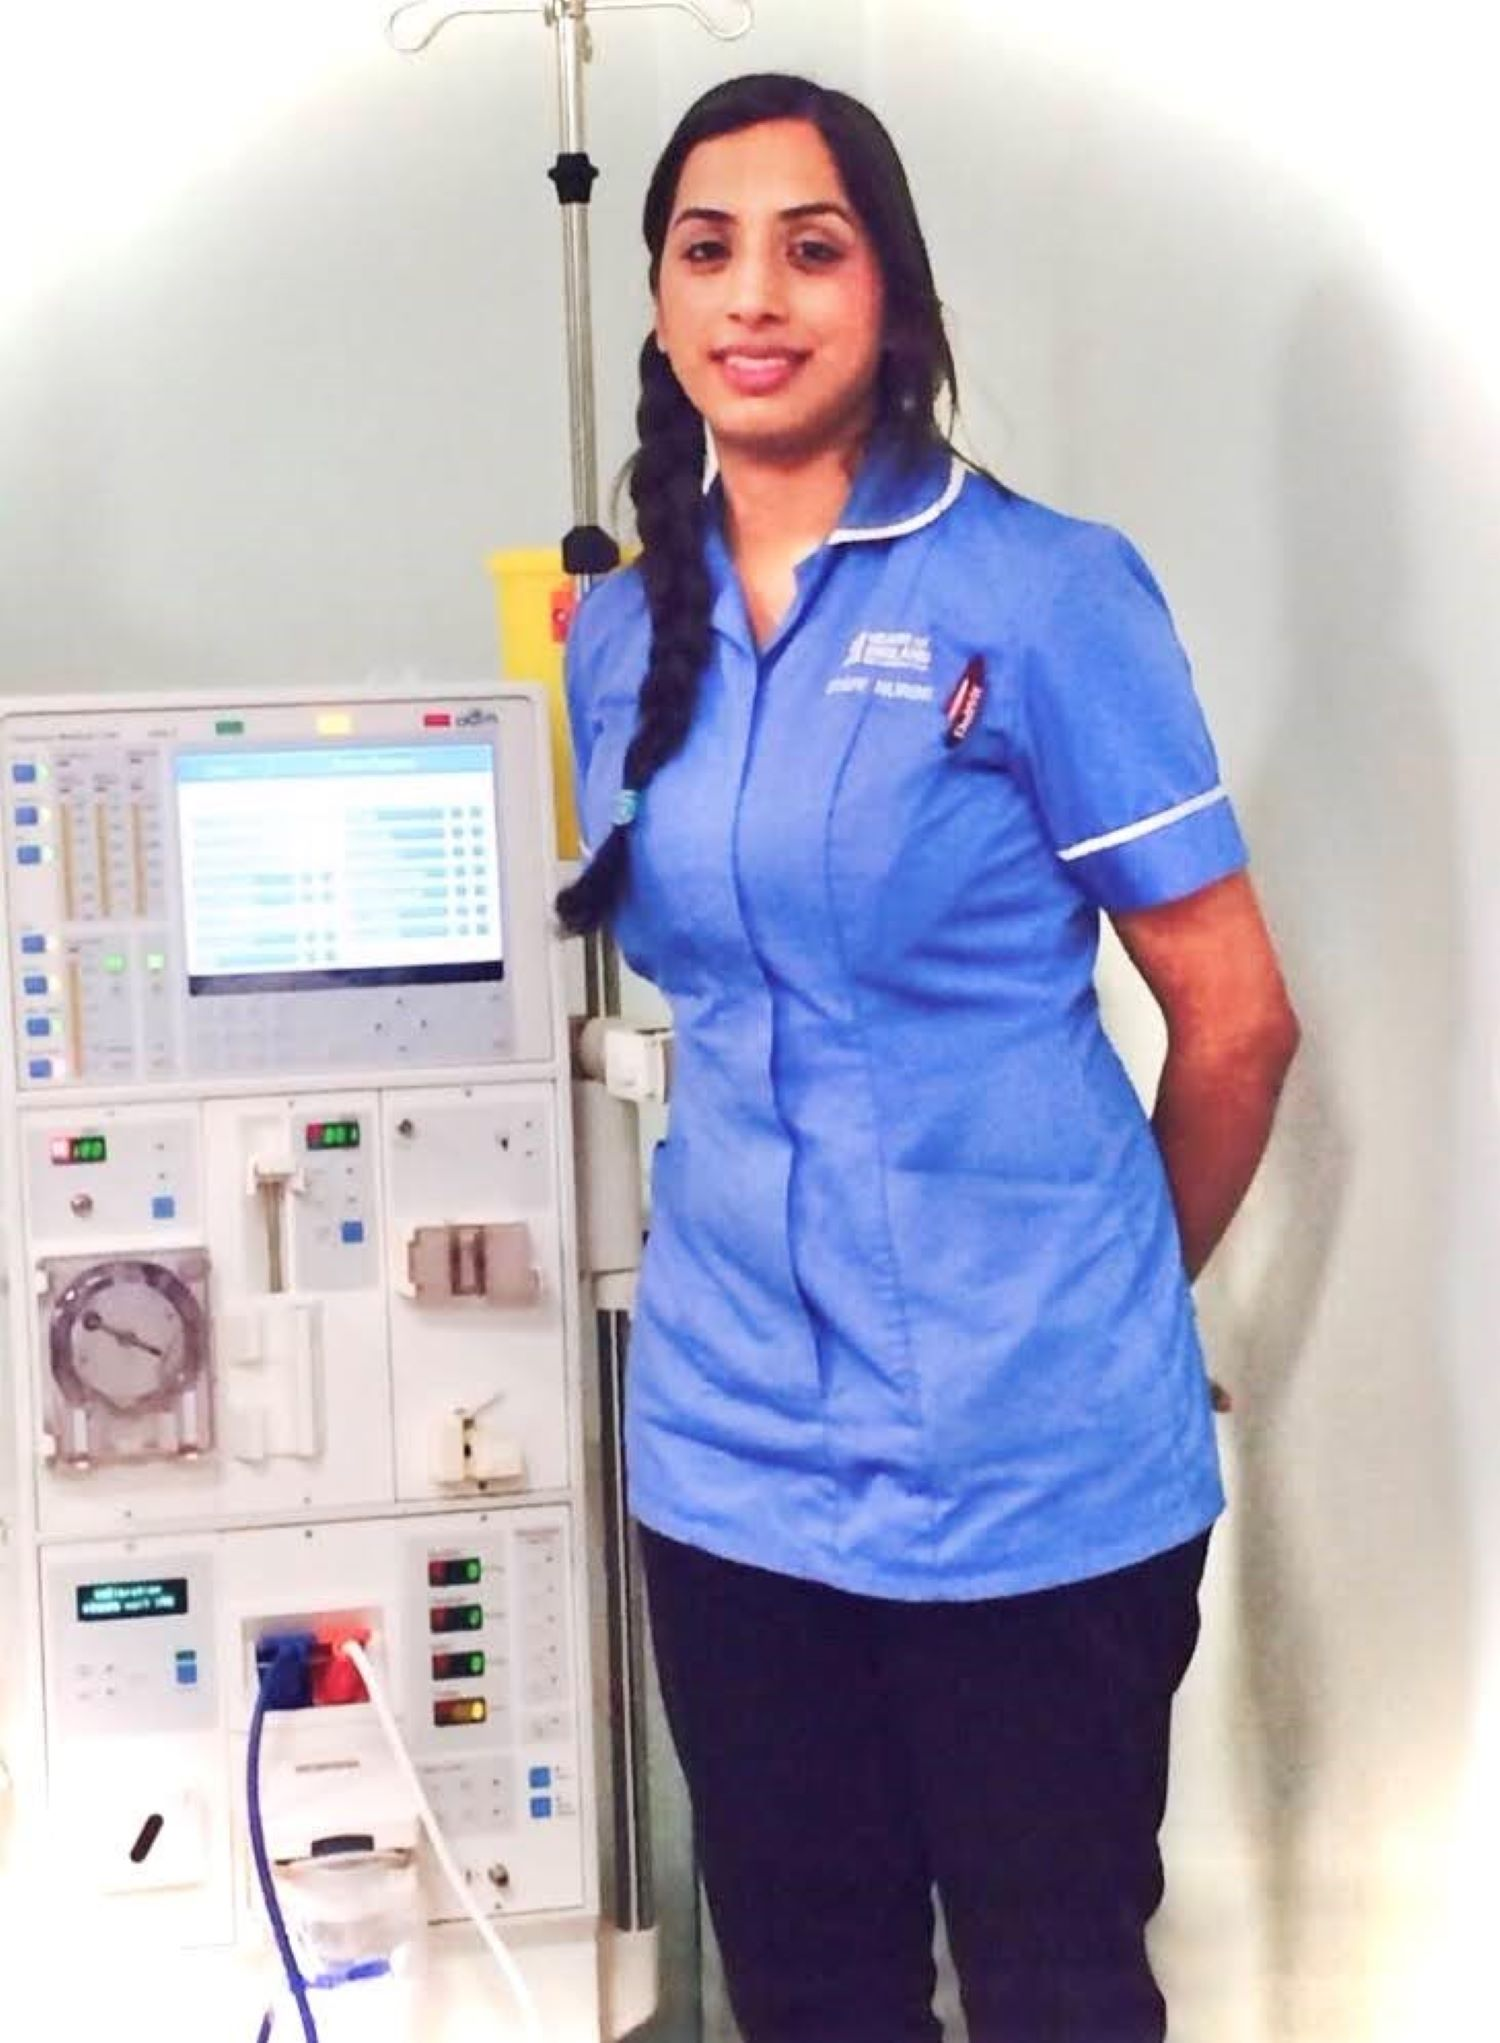 Salma Bi works as a nurse at the Heartlands Hospital in Birmingham